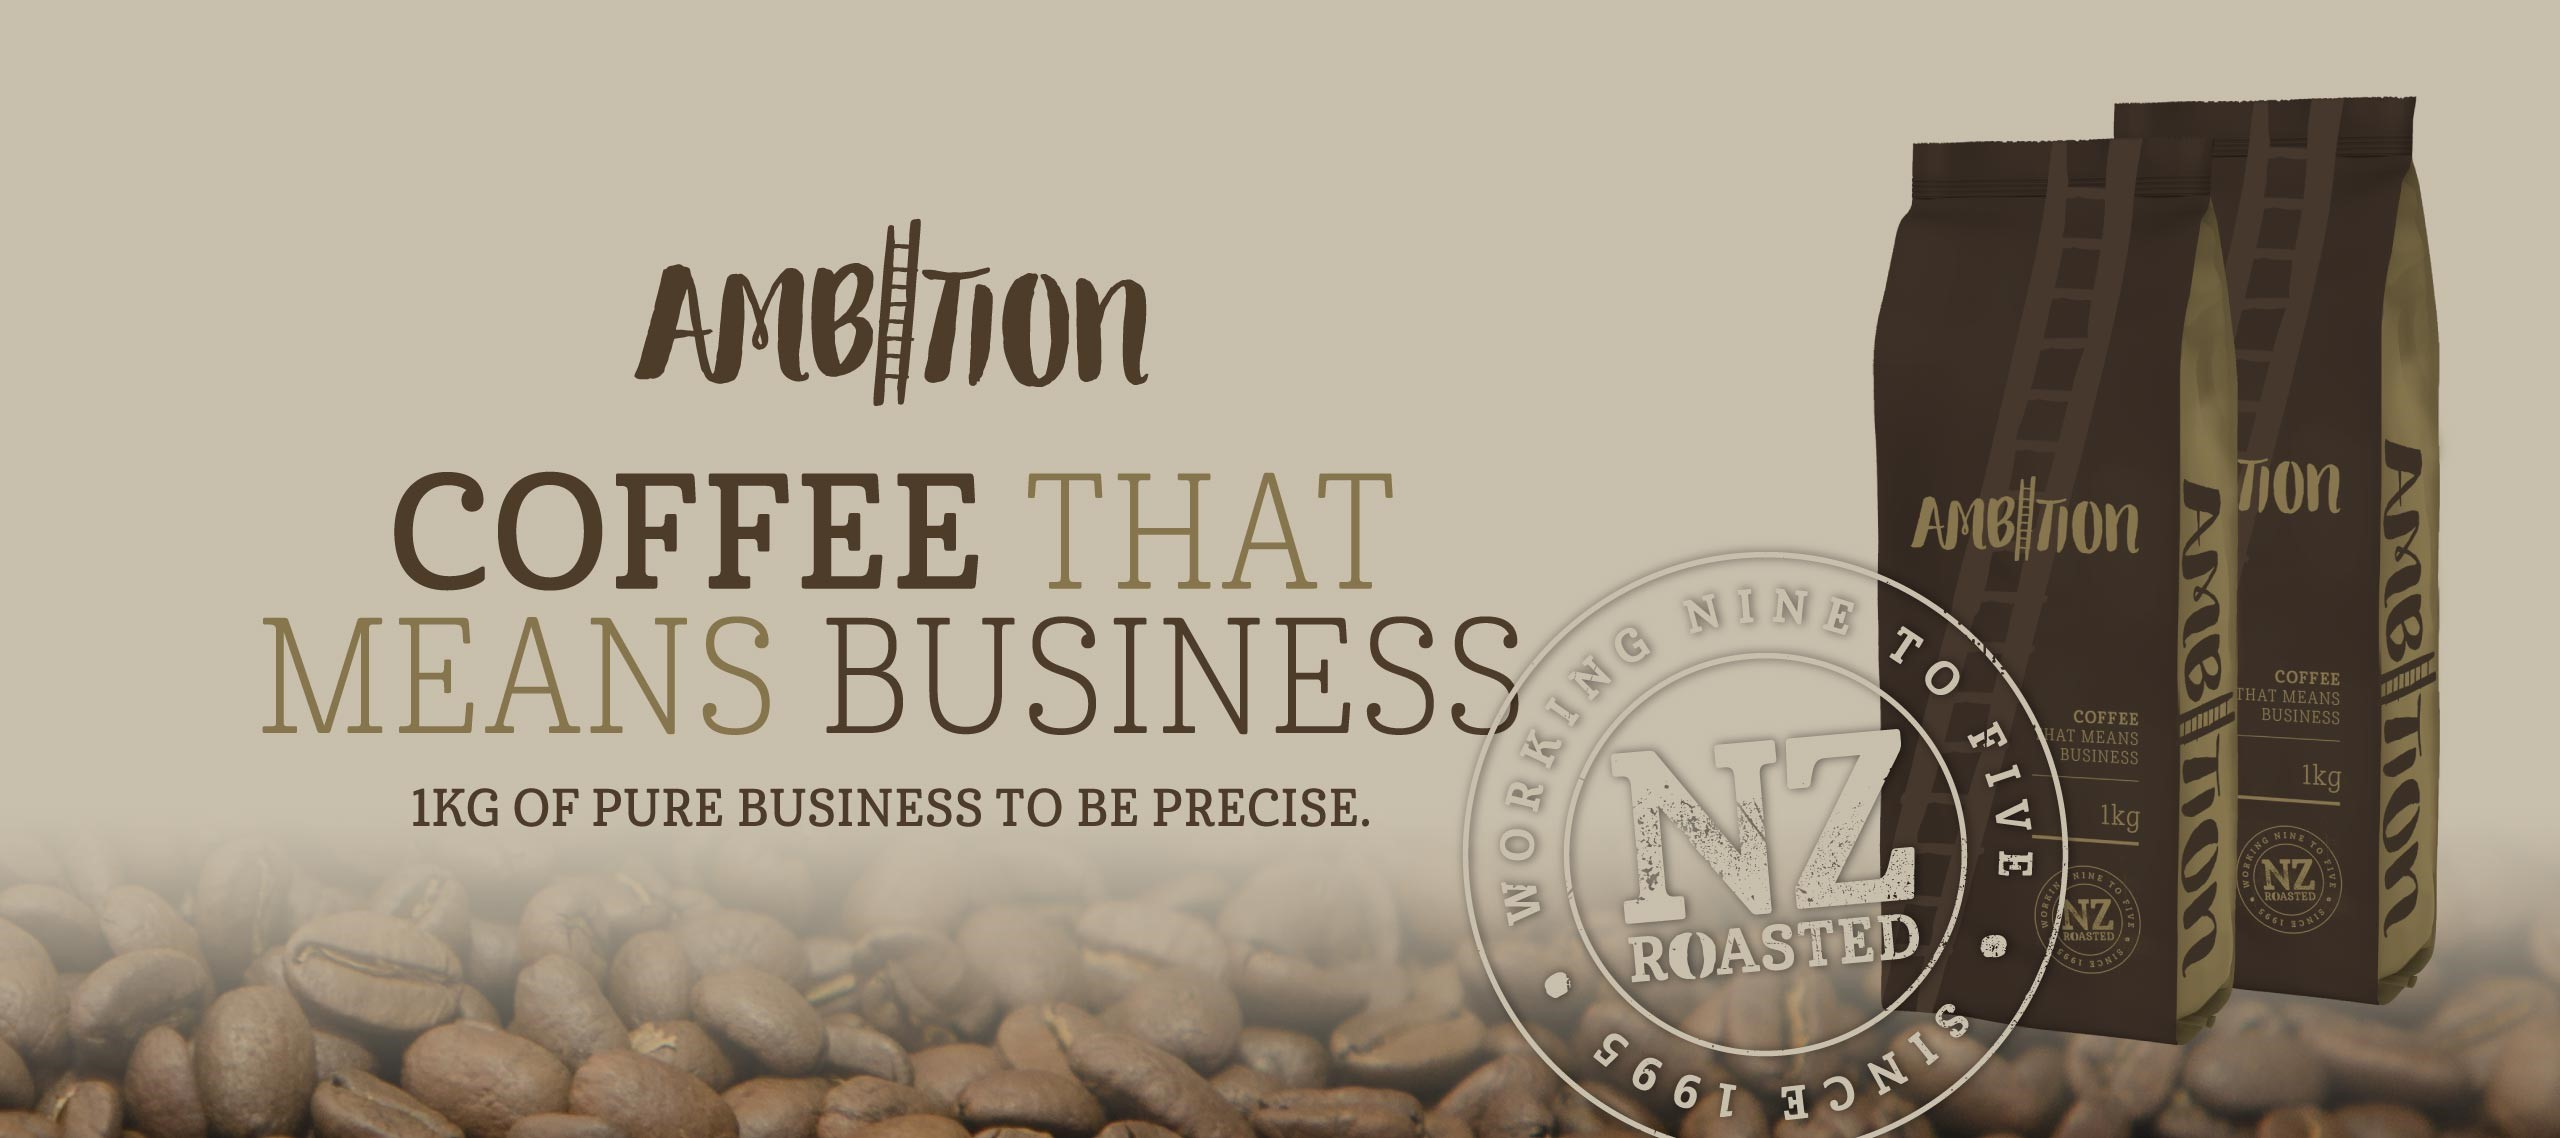 Ambition coffee beans